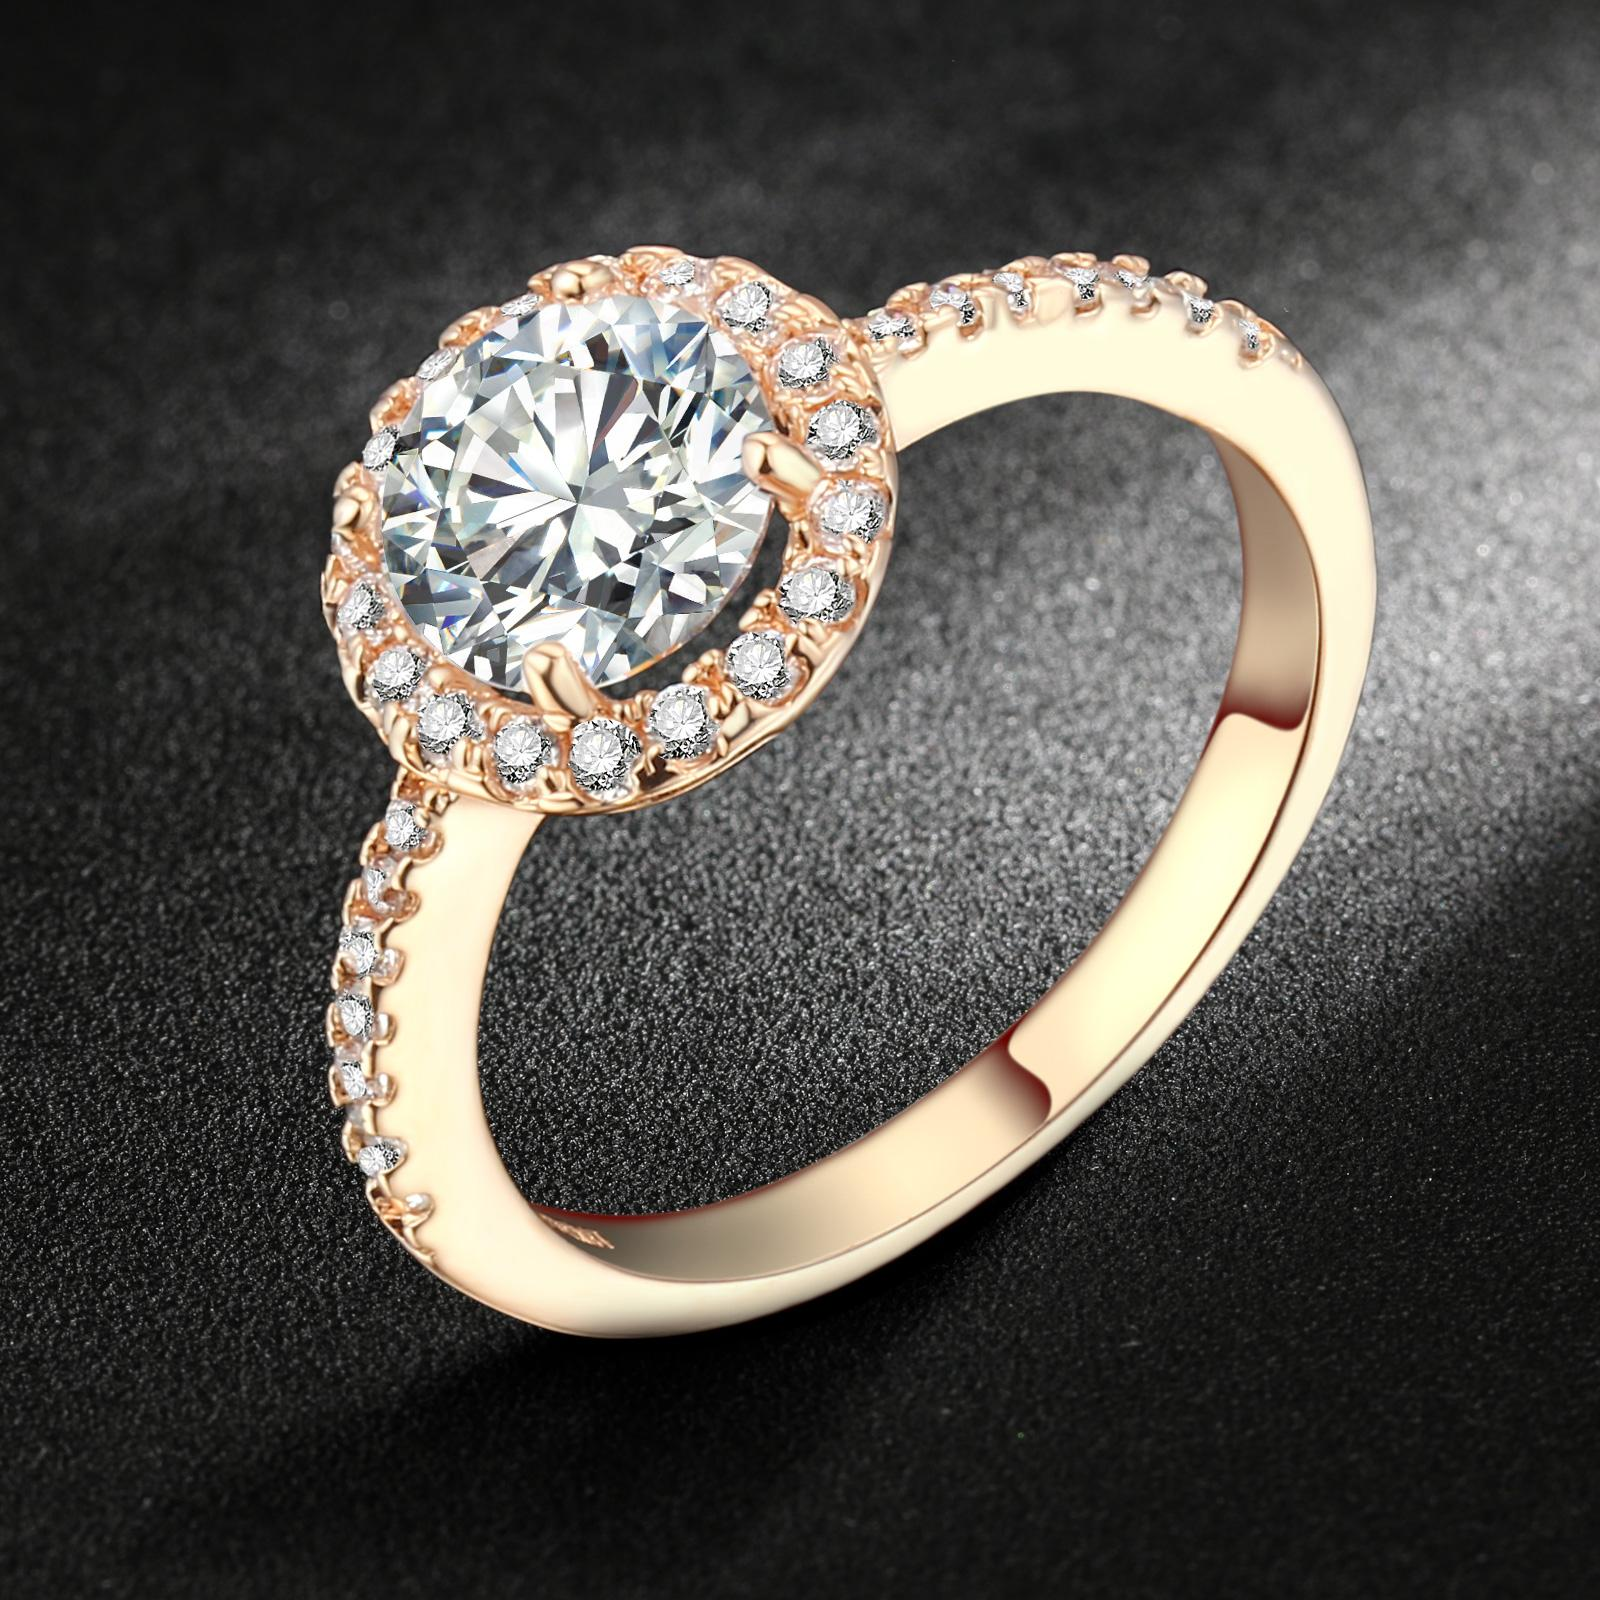 f63994db4 Swiss AAA+ CZ Diamond Halo Engagement Rings 18K Rose Gold/Platinum Plated  Crystal Round Ring Wedding Jewelry For Women DFR319